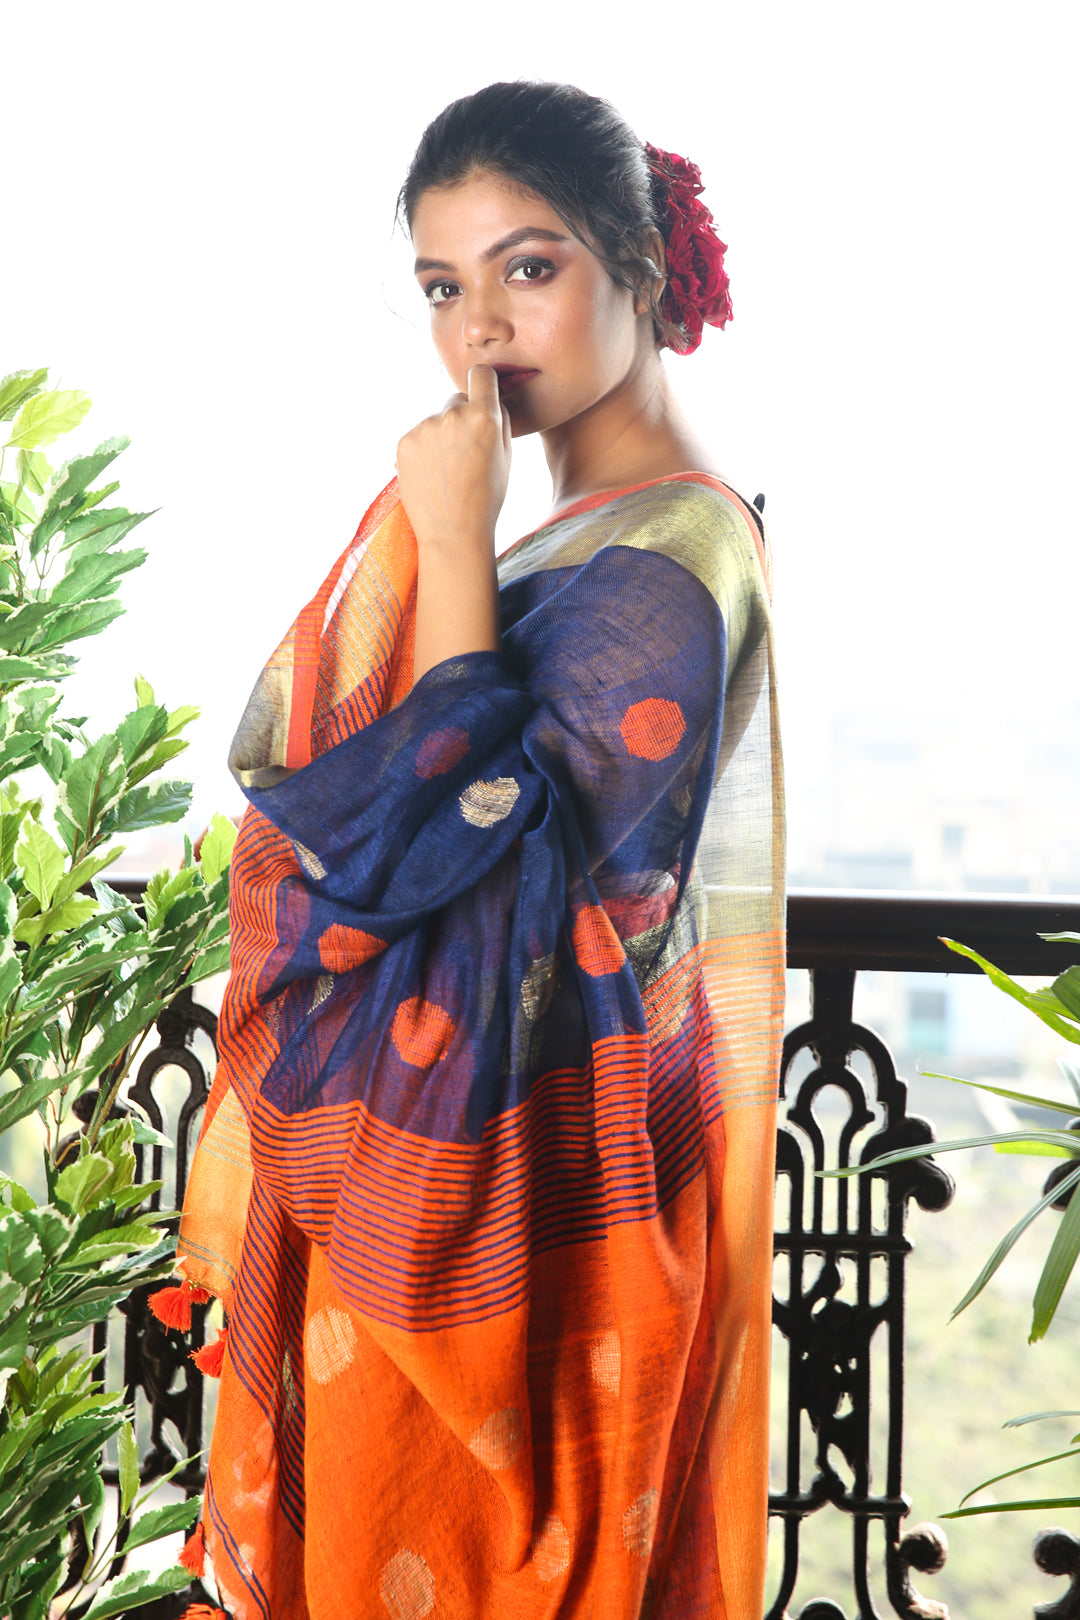 Navy Blue Zari Bordered Pure Linen With Polka Dot Weaving And Orange Pallu